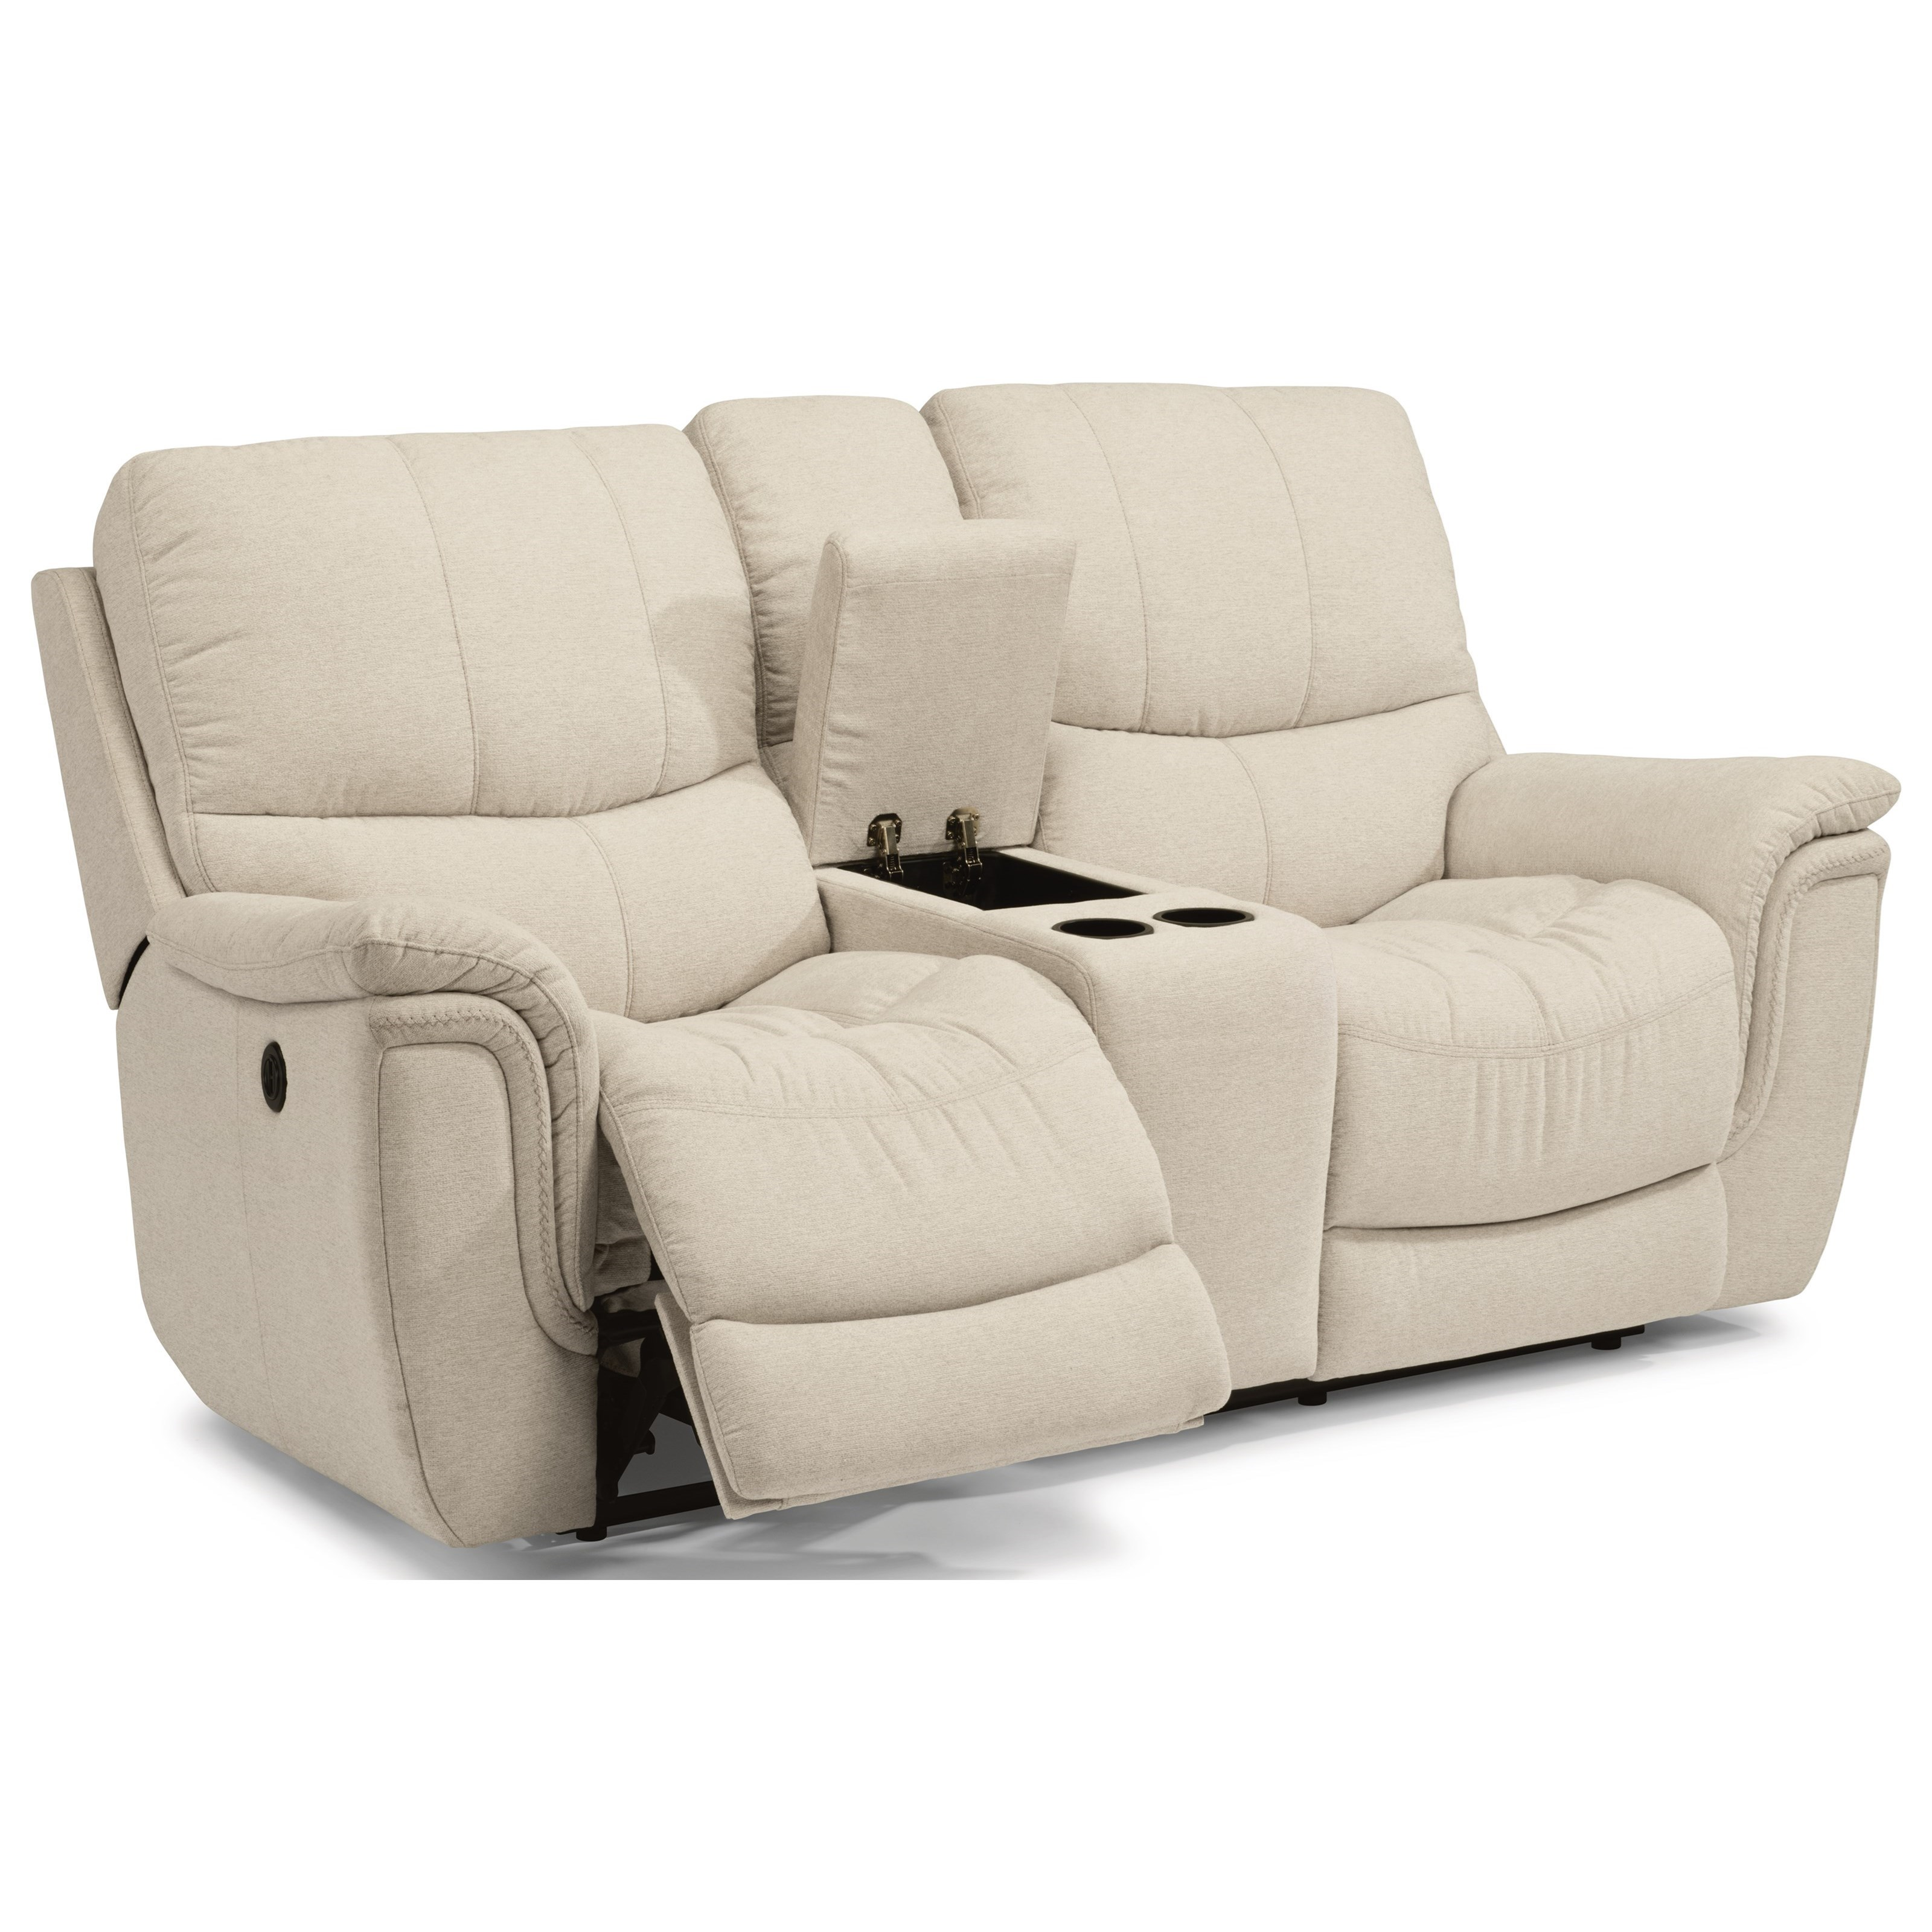 Flexsteel latitudes coco casual power reclining loveseat with console cup holders and usb ports Loveseat with cup holders